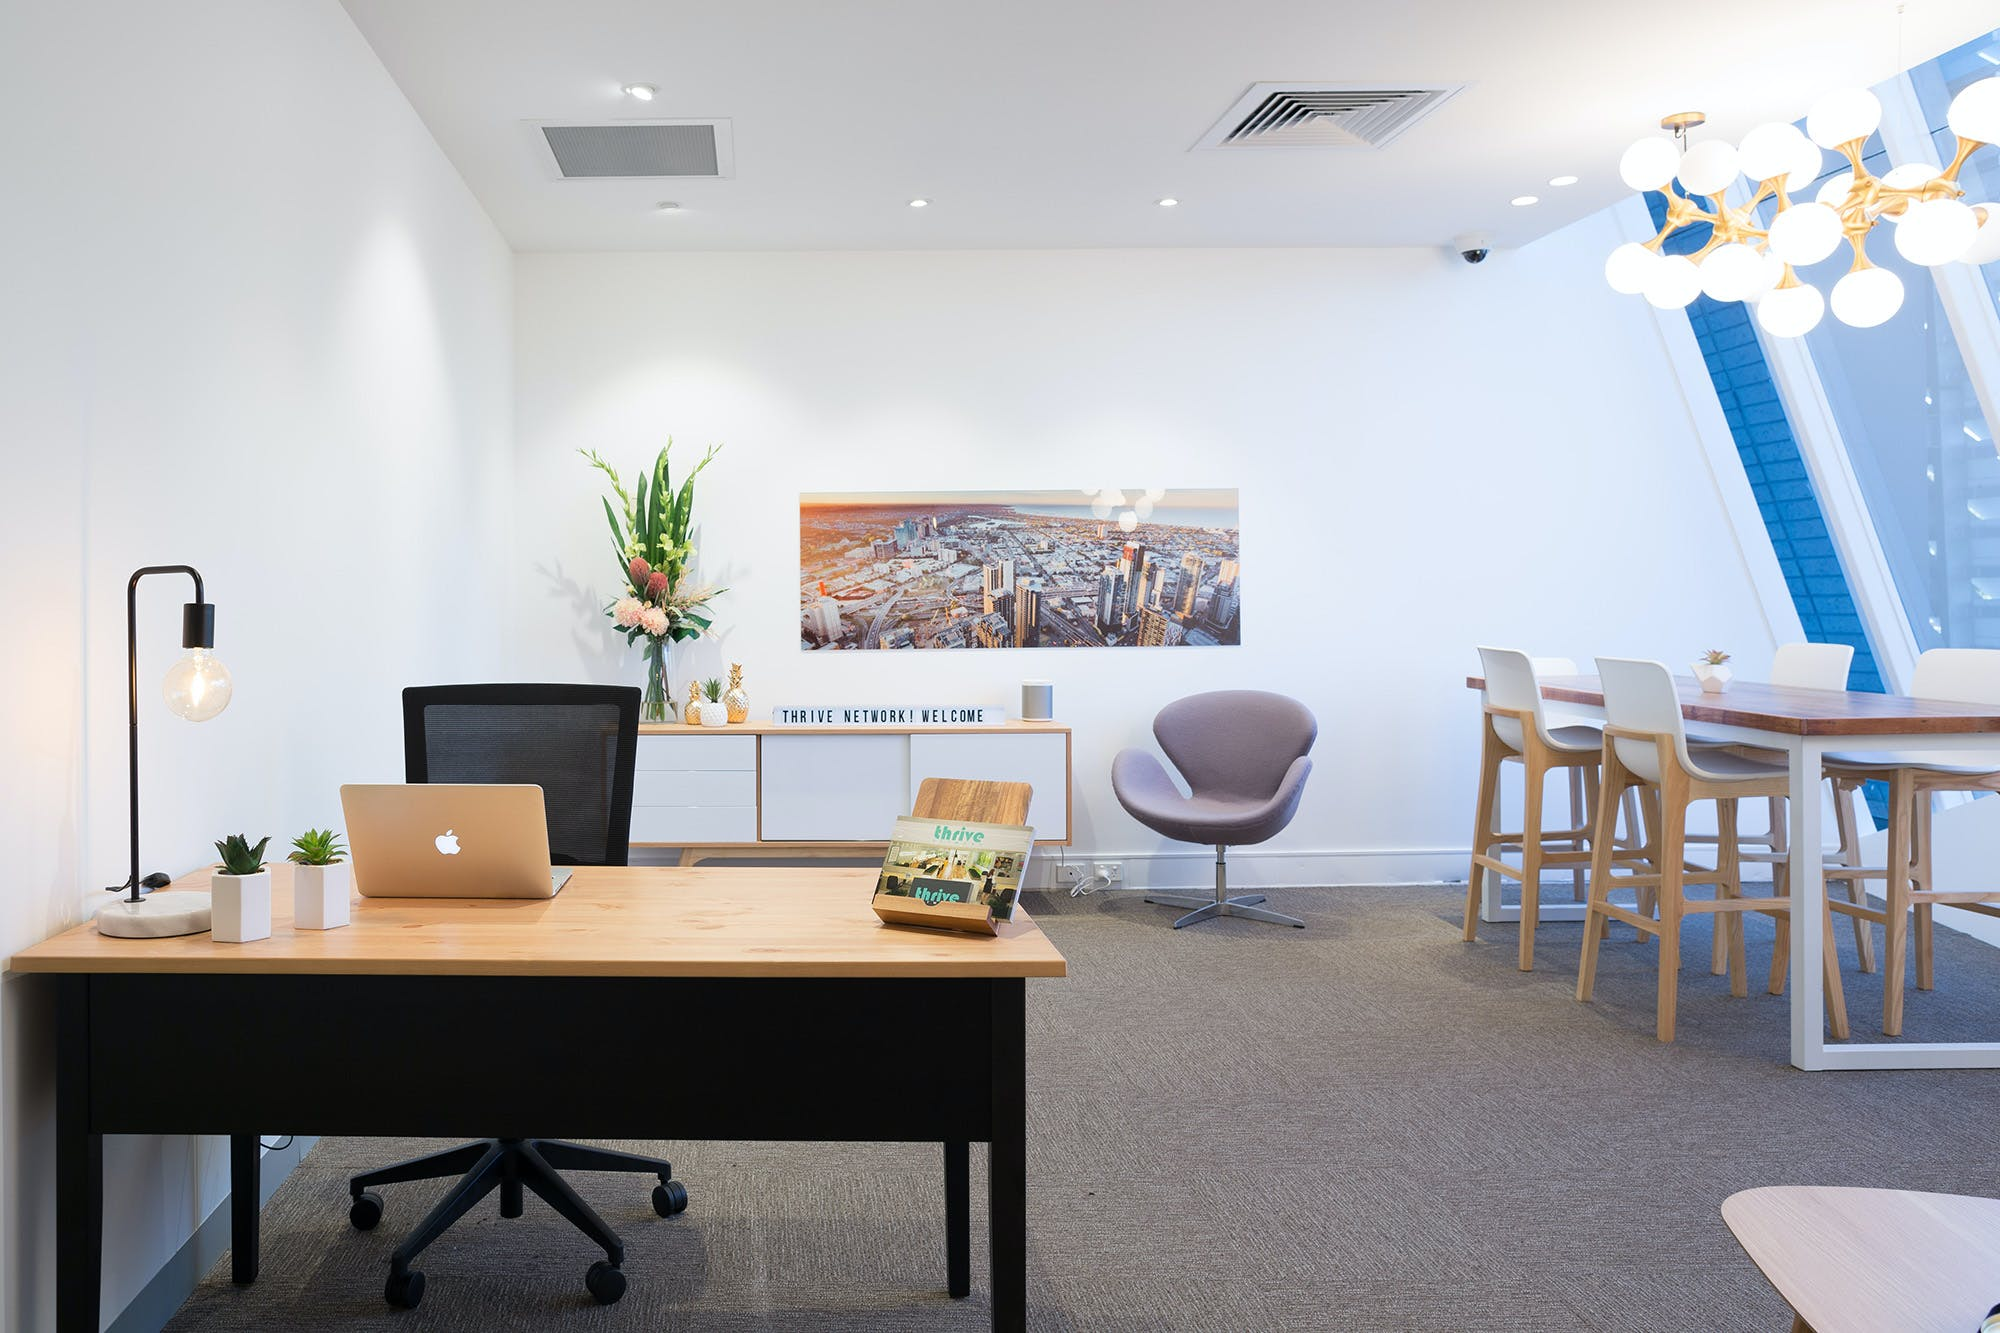 Dedicated desk at The Thrive Network, image 5